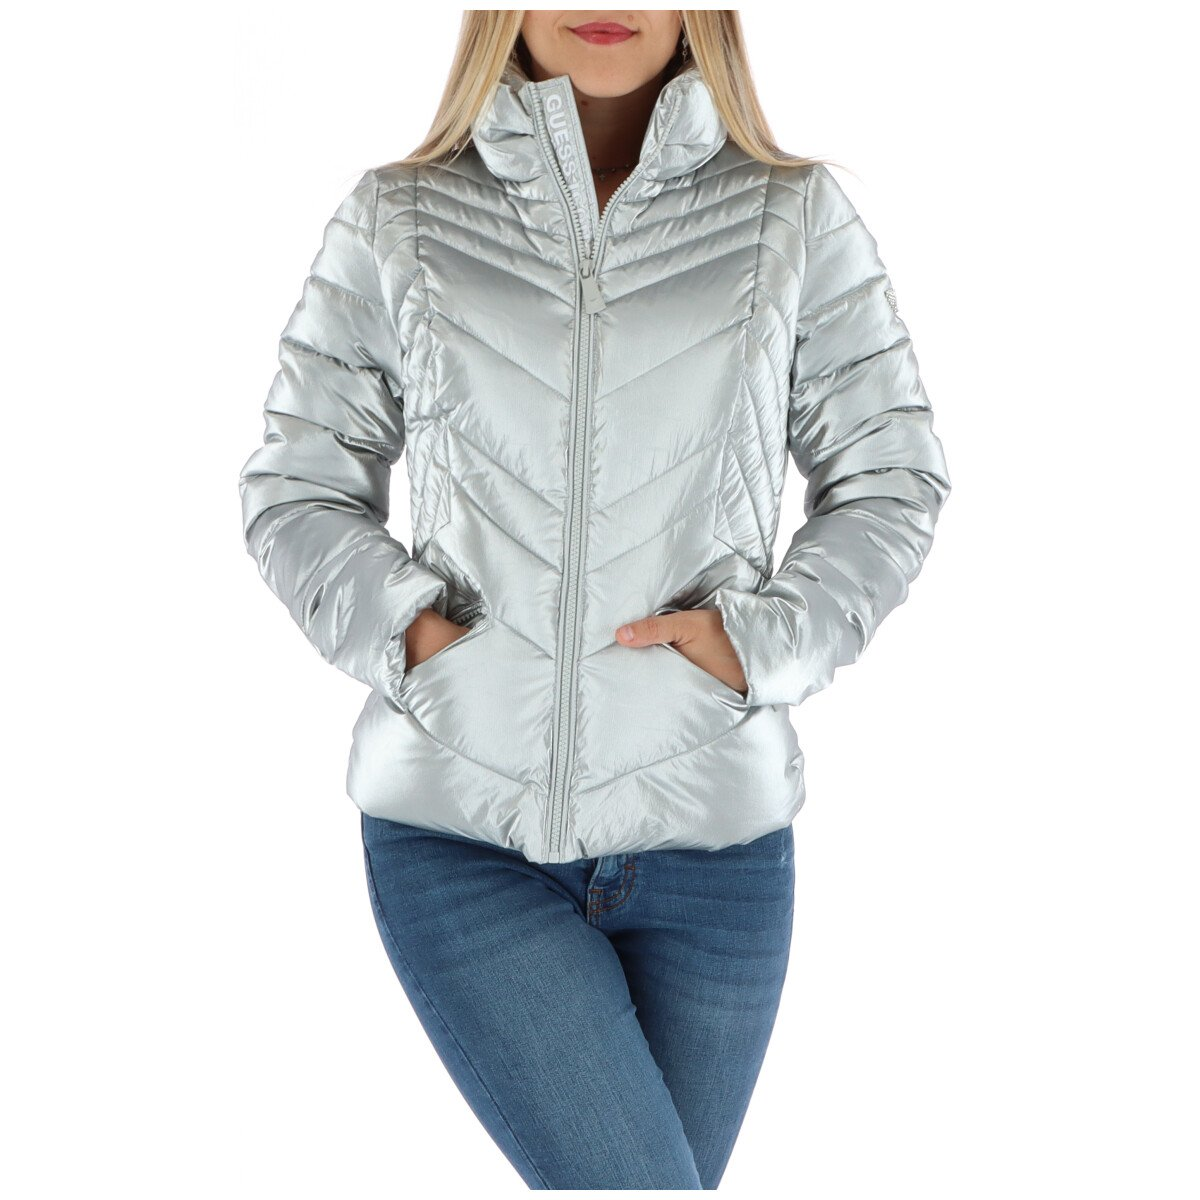 Guess Women's Jacket Various Colours 314311 - silver XS